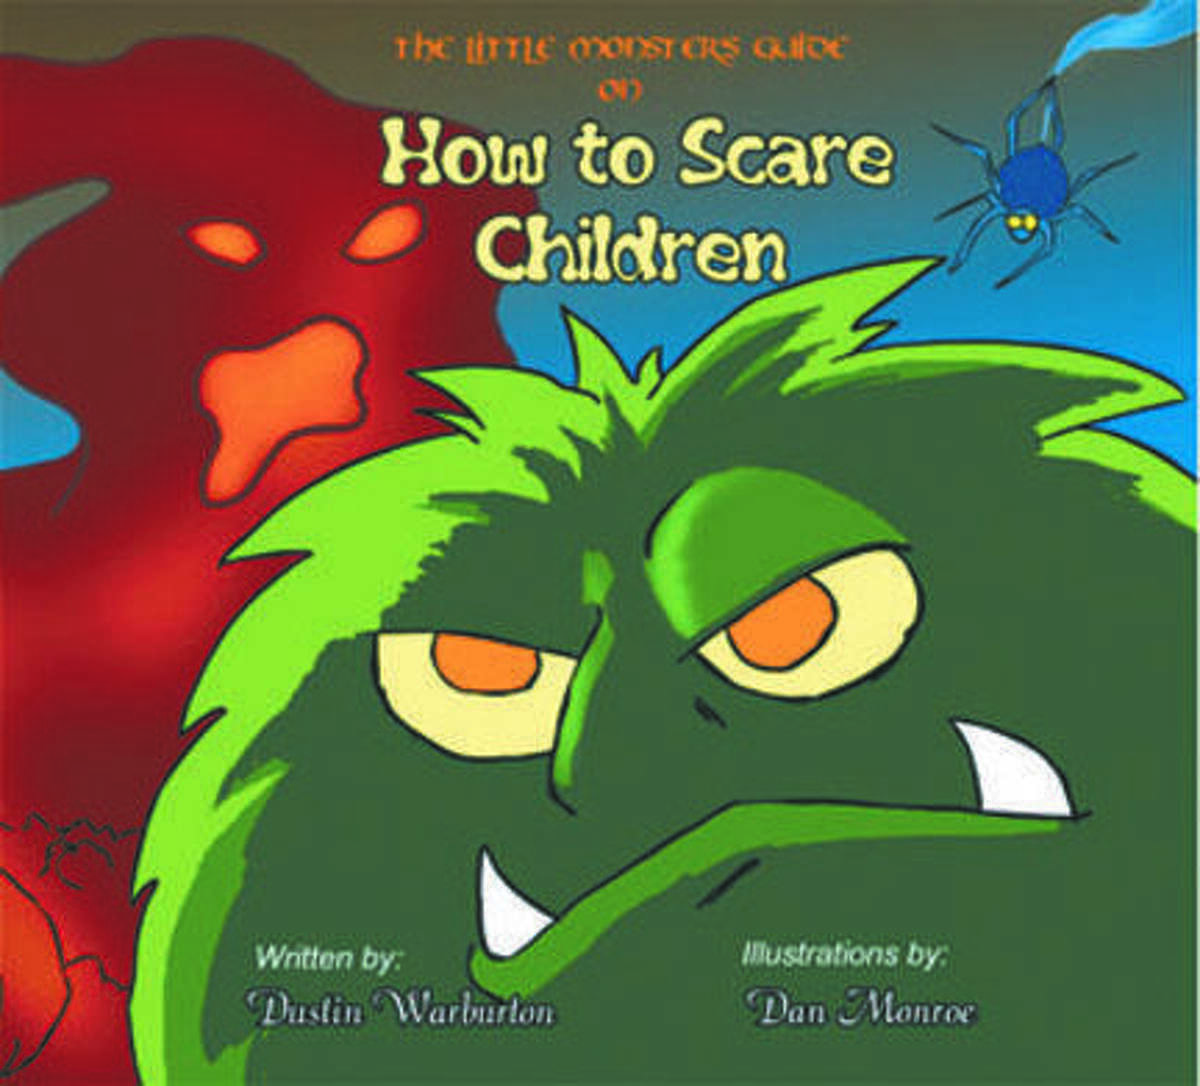 Submitted Photo Author/filmmaker Dustin Warburton discusses new picture book and film credit.